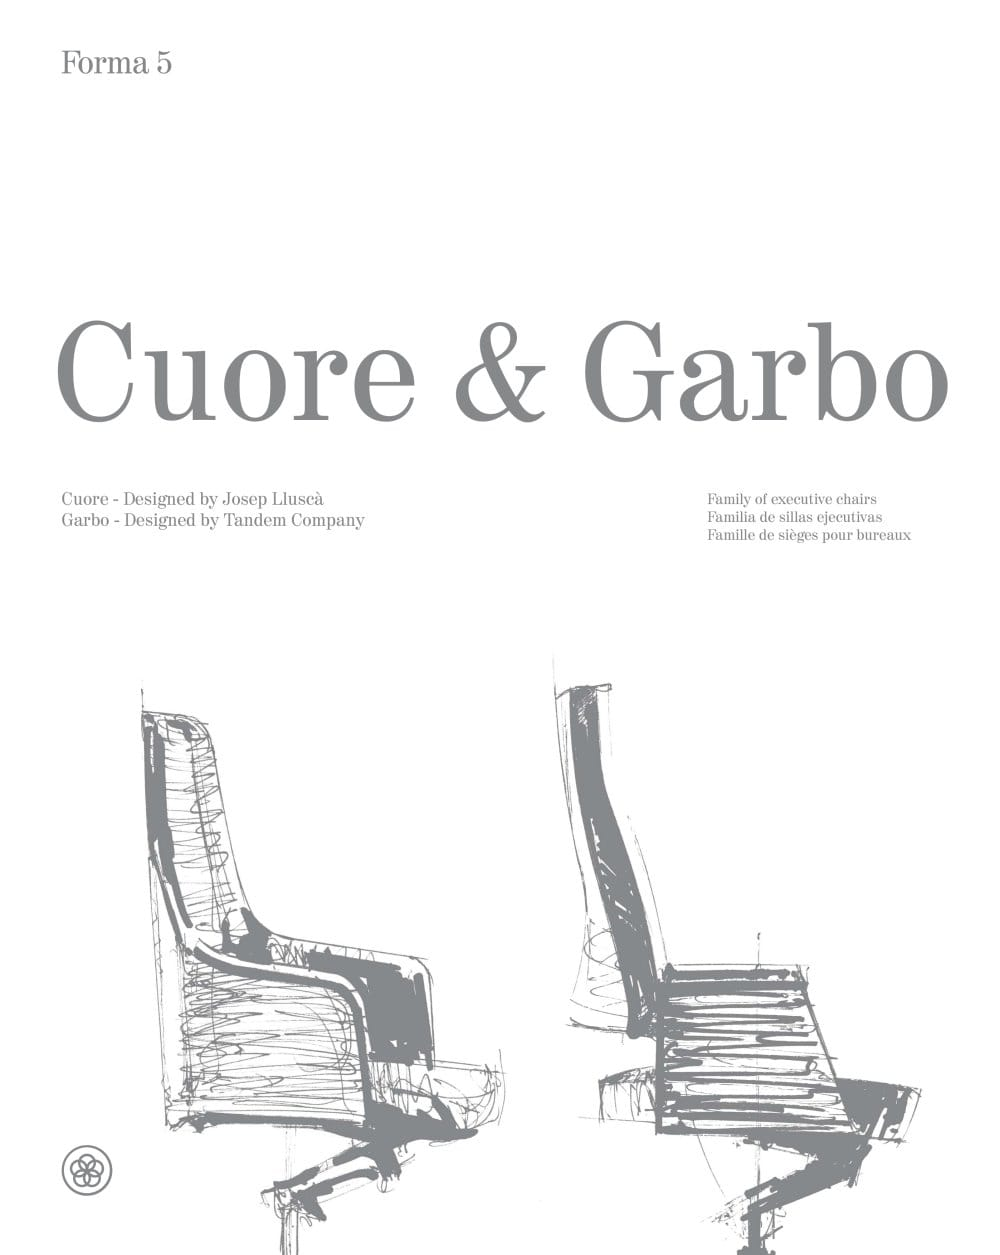 Silla Cuore Cuore Forma 5 Pdf Catalogs Documentation Brochures